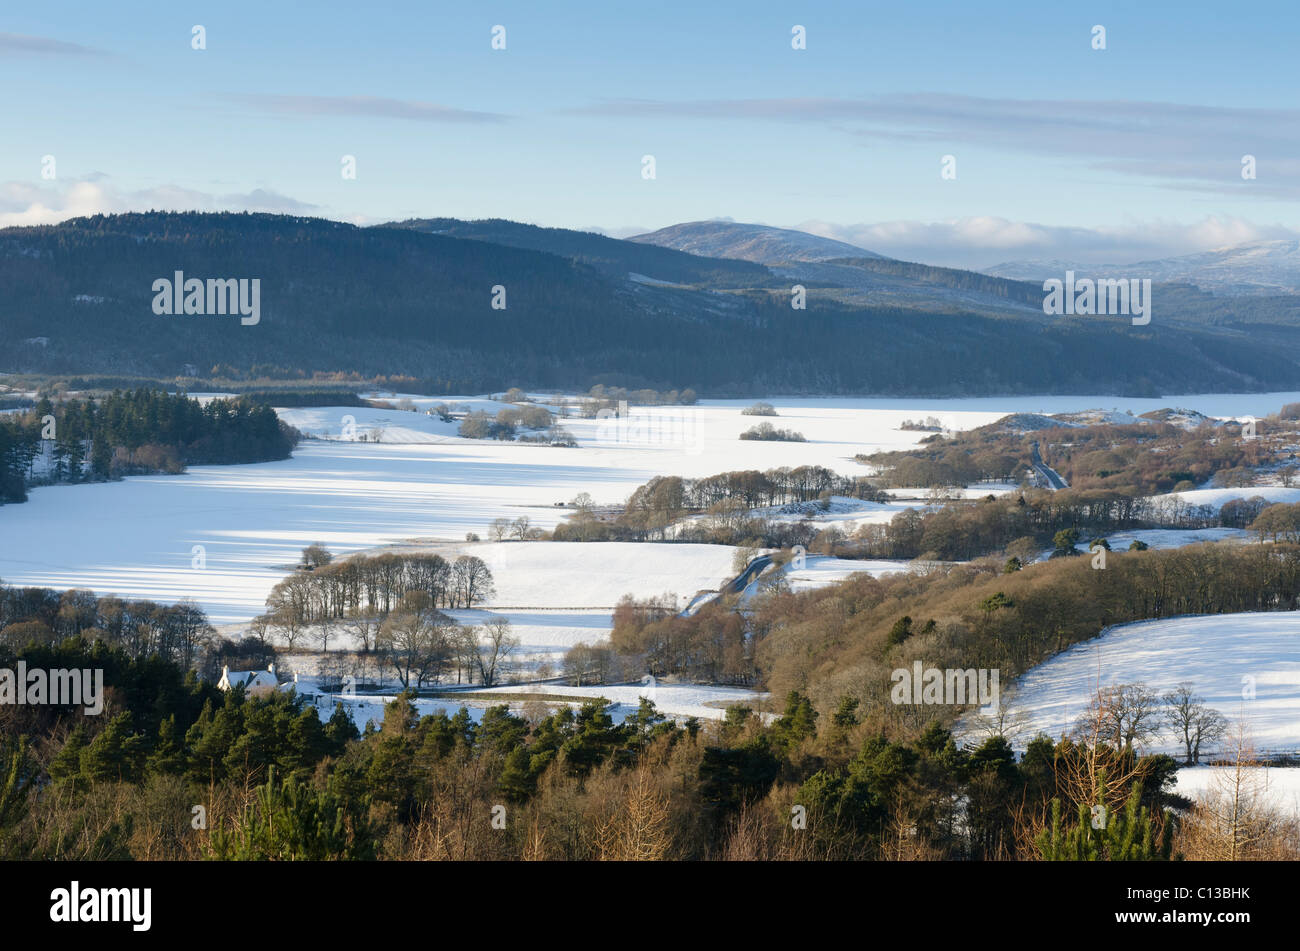 Loch Ken, Galloway, frozen over with islets Looking north - Stock Image